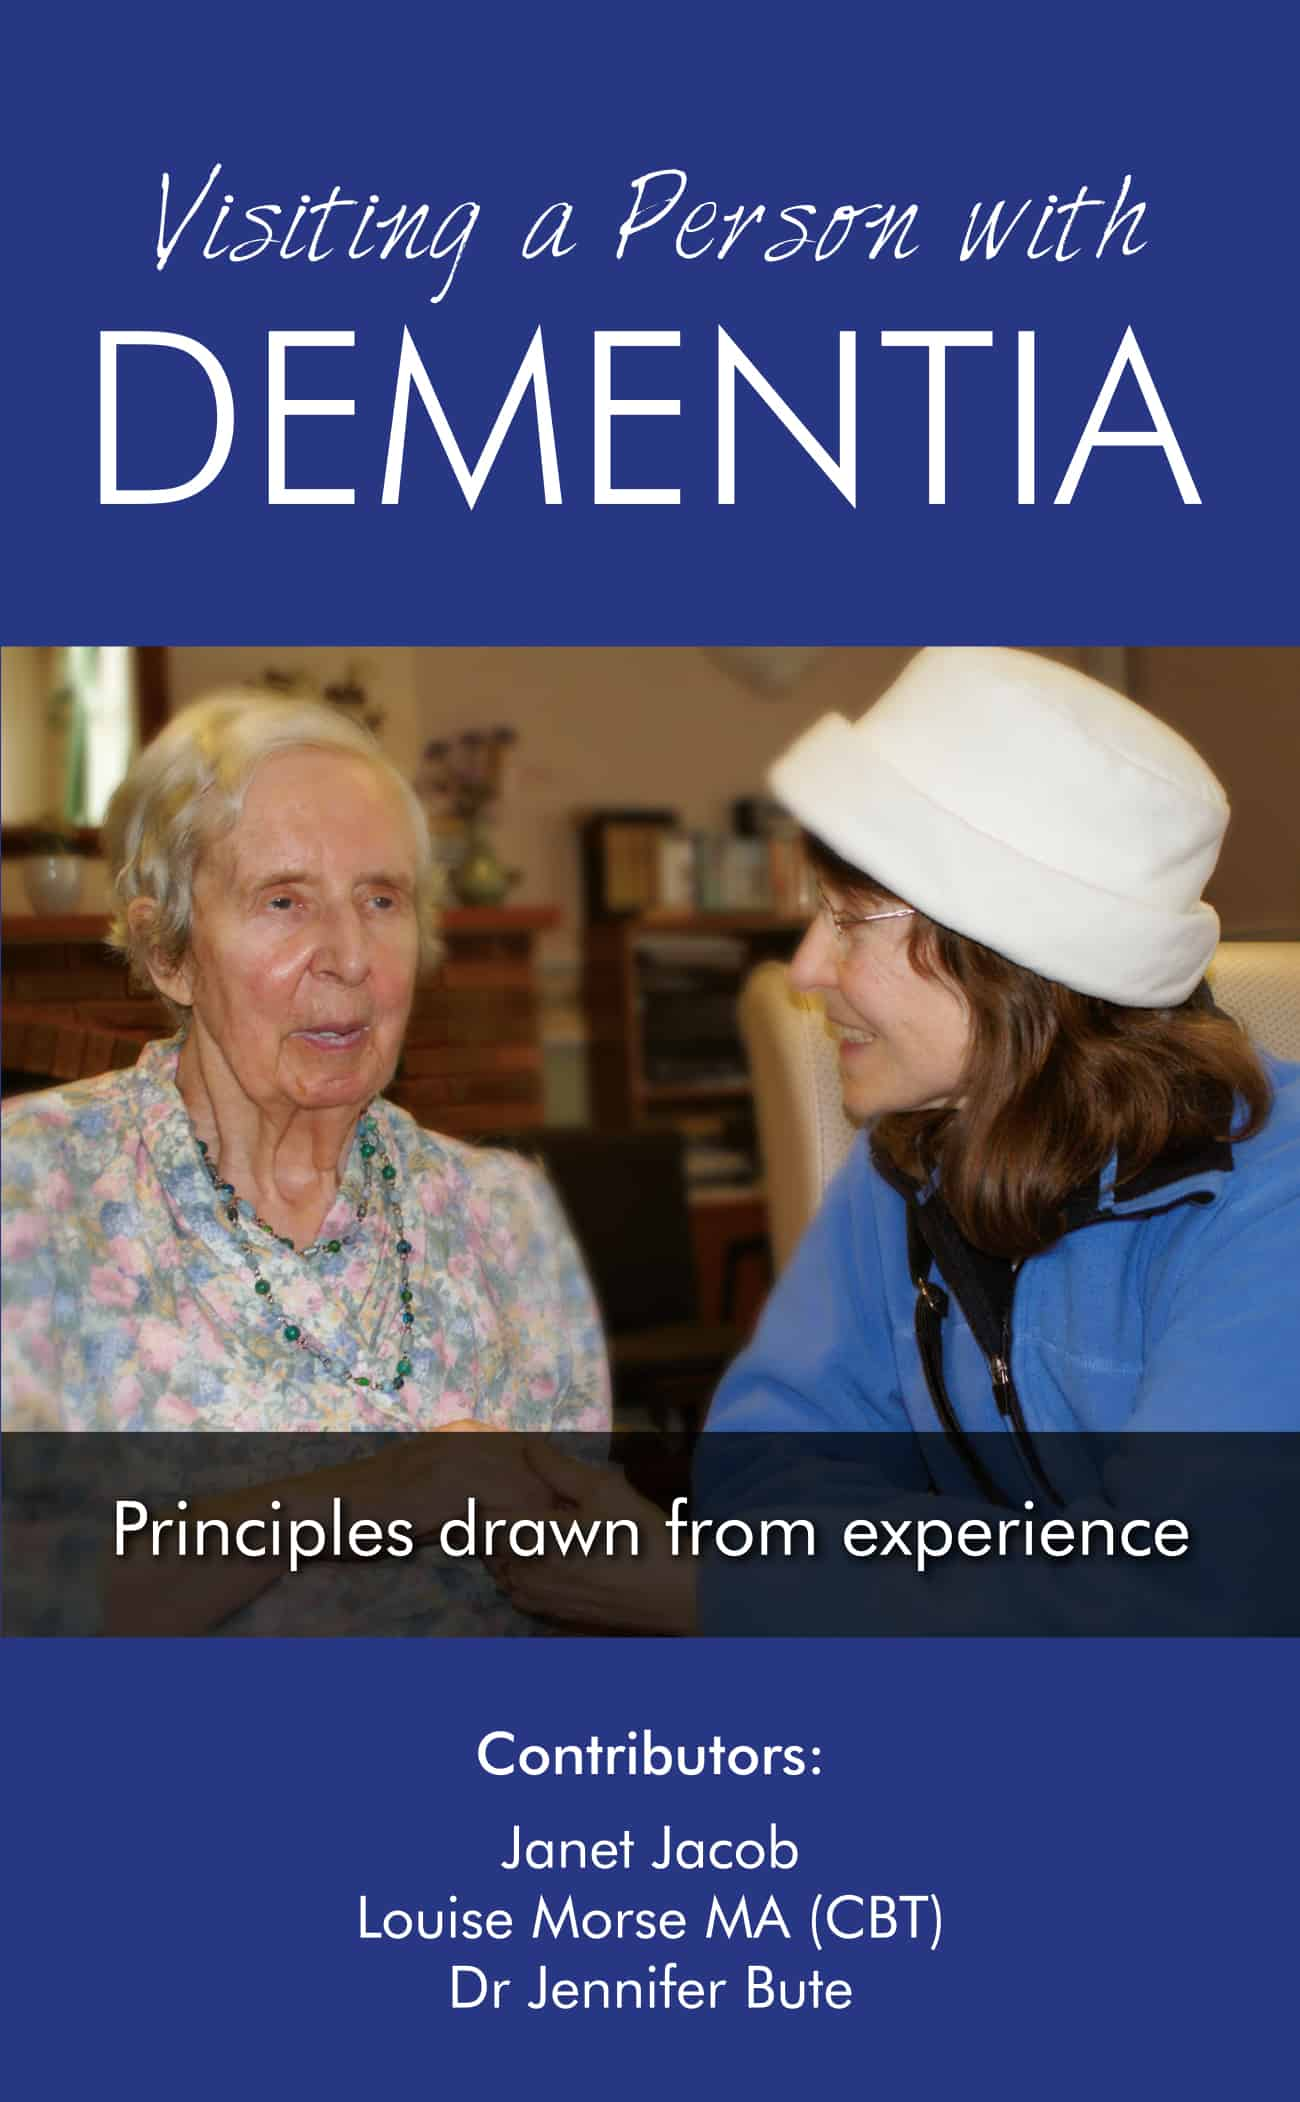 Cover new revised Visiting a Person Dementia Oct 2019 (002)